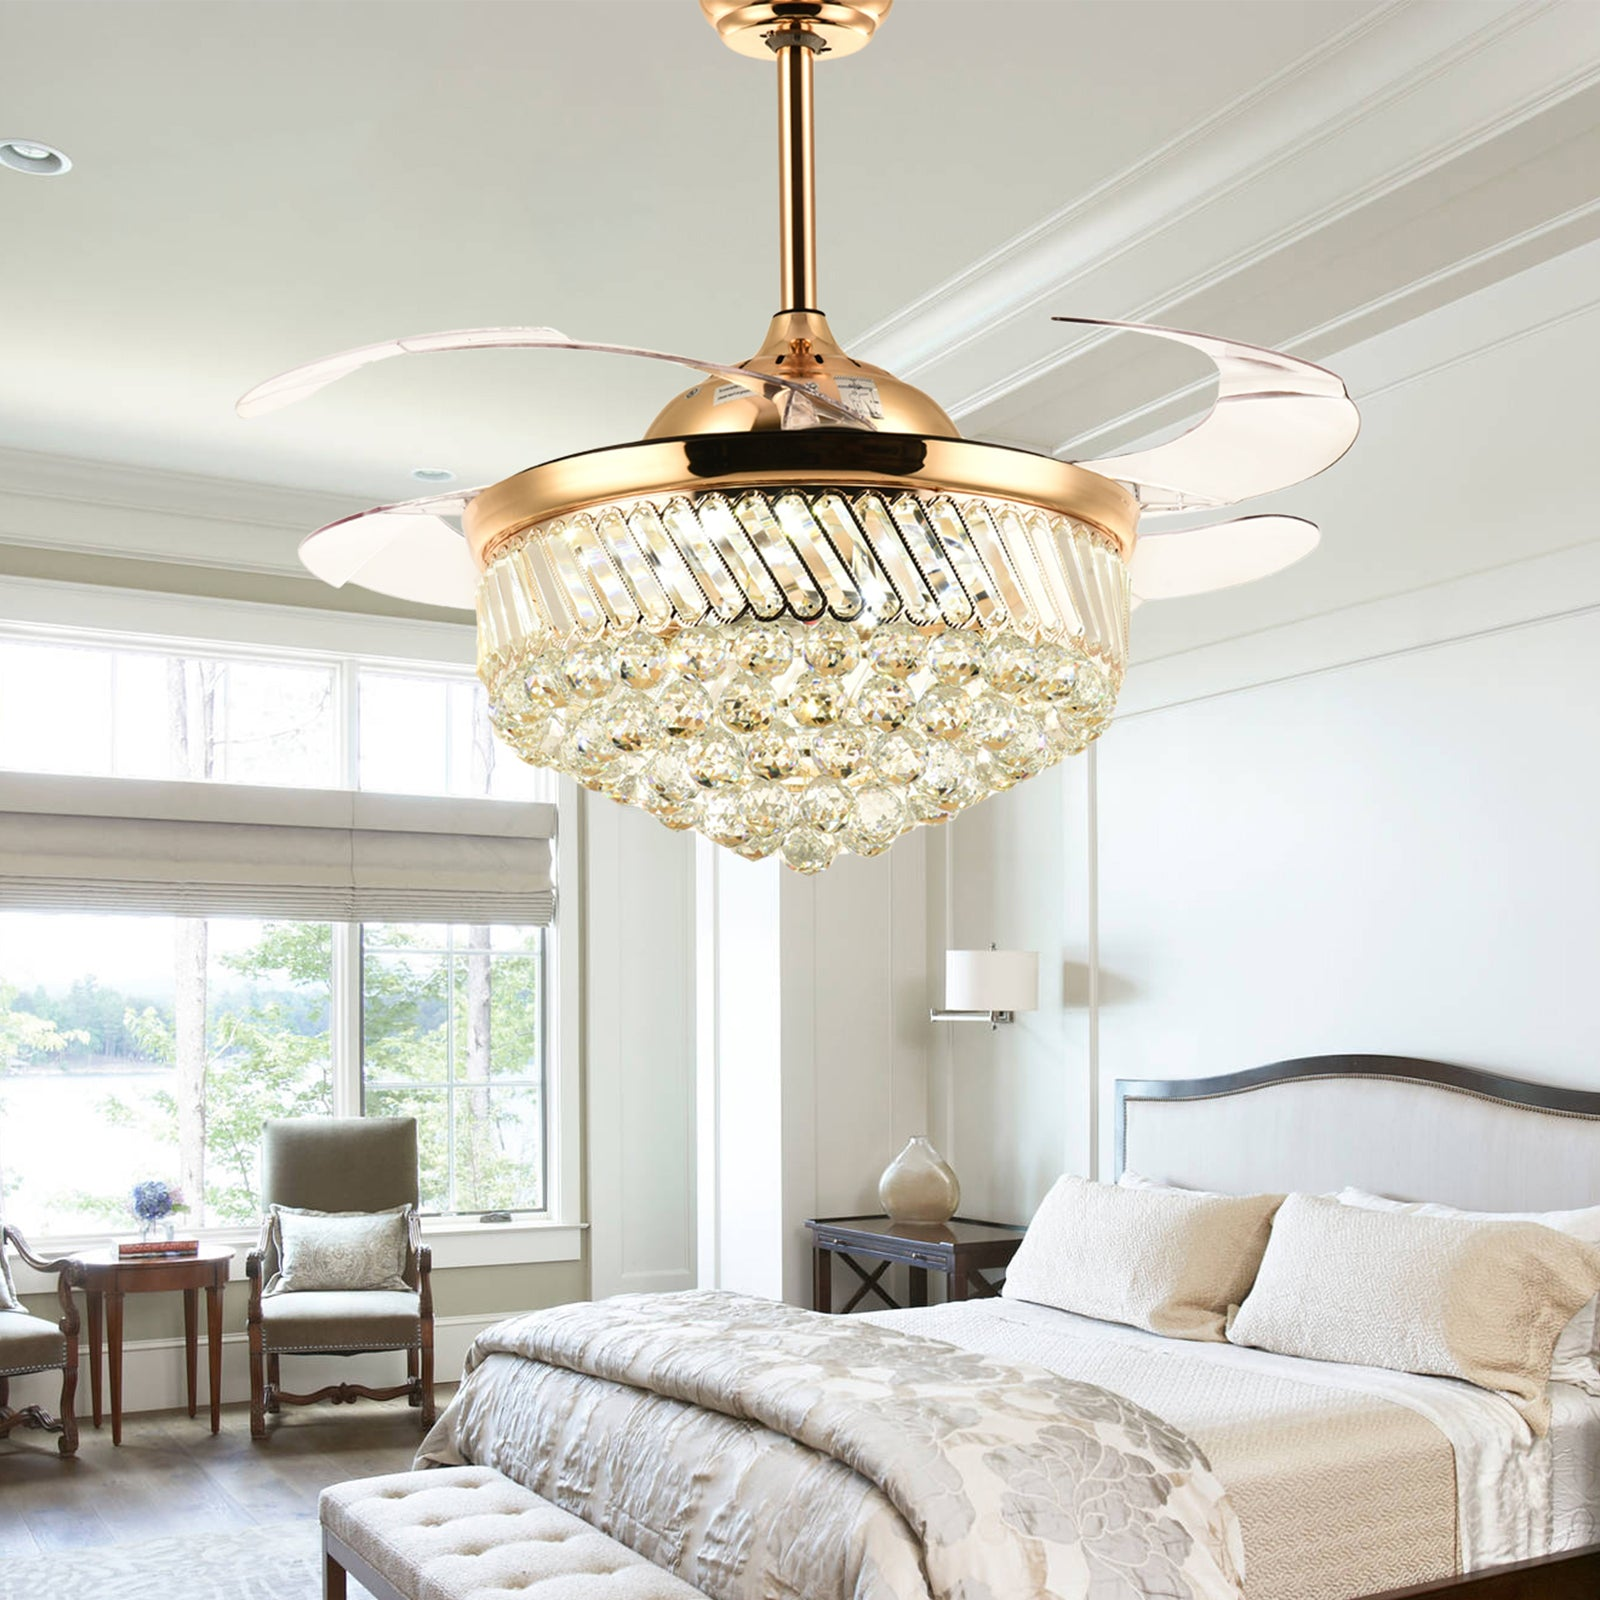 Crystal Ceiling Fan With Retractable Blades   Bedroom